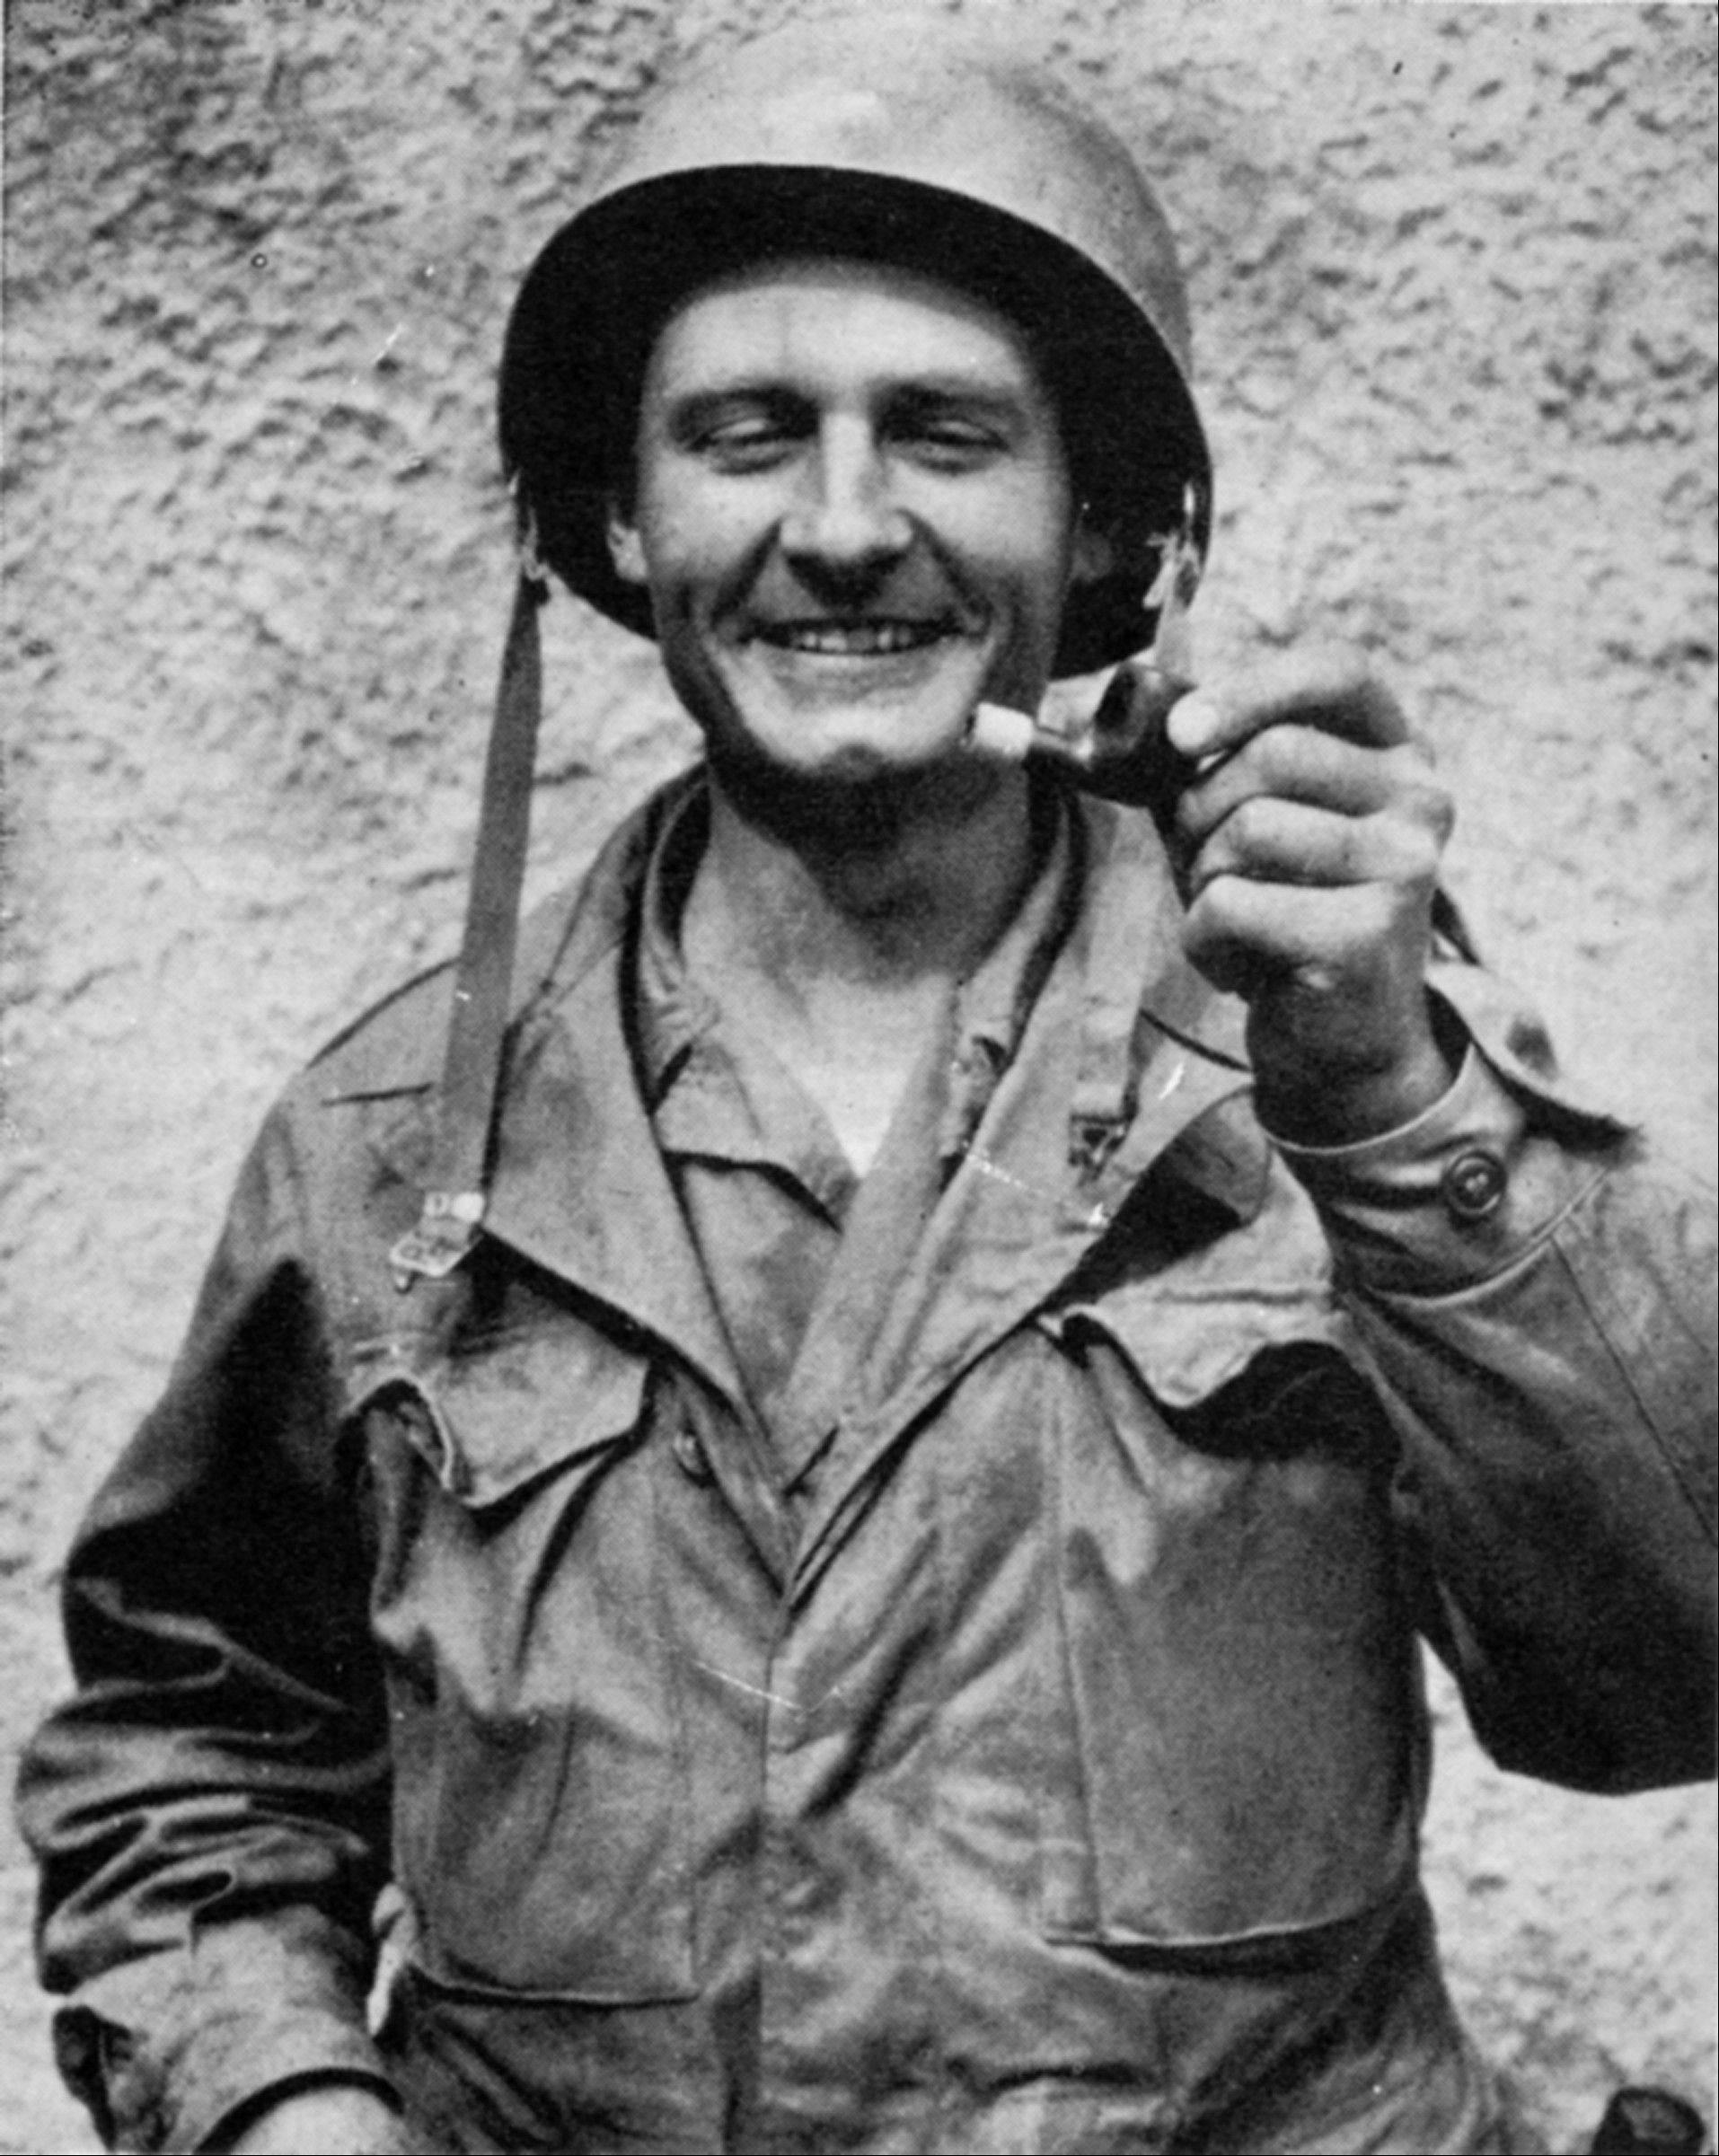 In this undated photo provided by the Catholic Diocese of Wichita, Father Emil Kapaun holds out a broken pipe. The plain-spoken, pipe-smoking chaplain is receiving the Medal of Honor posthumously for his �extraordinary heroism� while serving as an Army chaplain during the Korean War. He died in captivity in 1951 _ about six months after being taken prisoner. His fellow POWs lobbied for decades to have him receive the prestigious military honor and some of them will be at the White House to see his relatives accept the medal on his behalf on April 11, 2013.